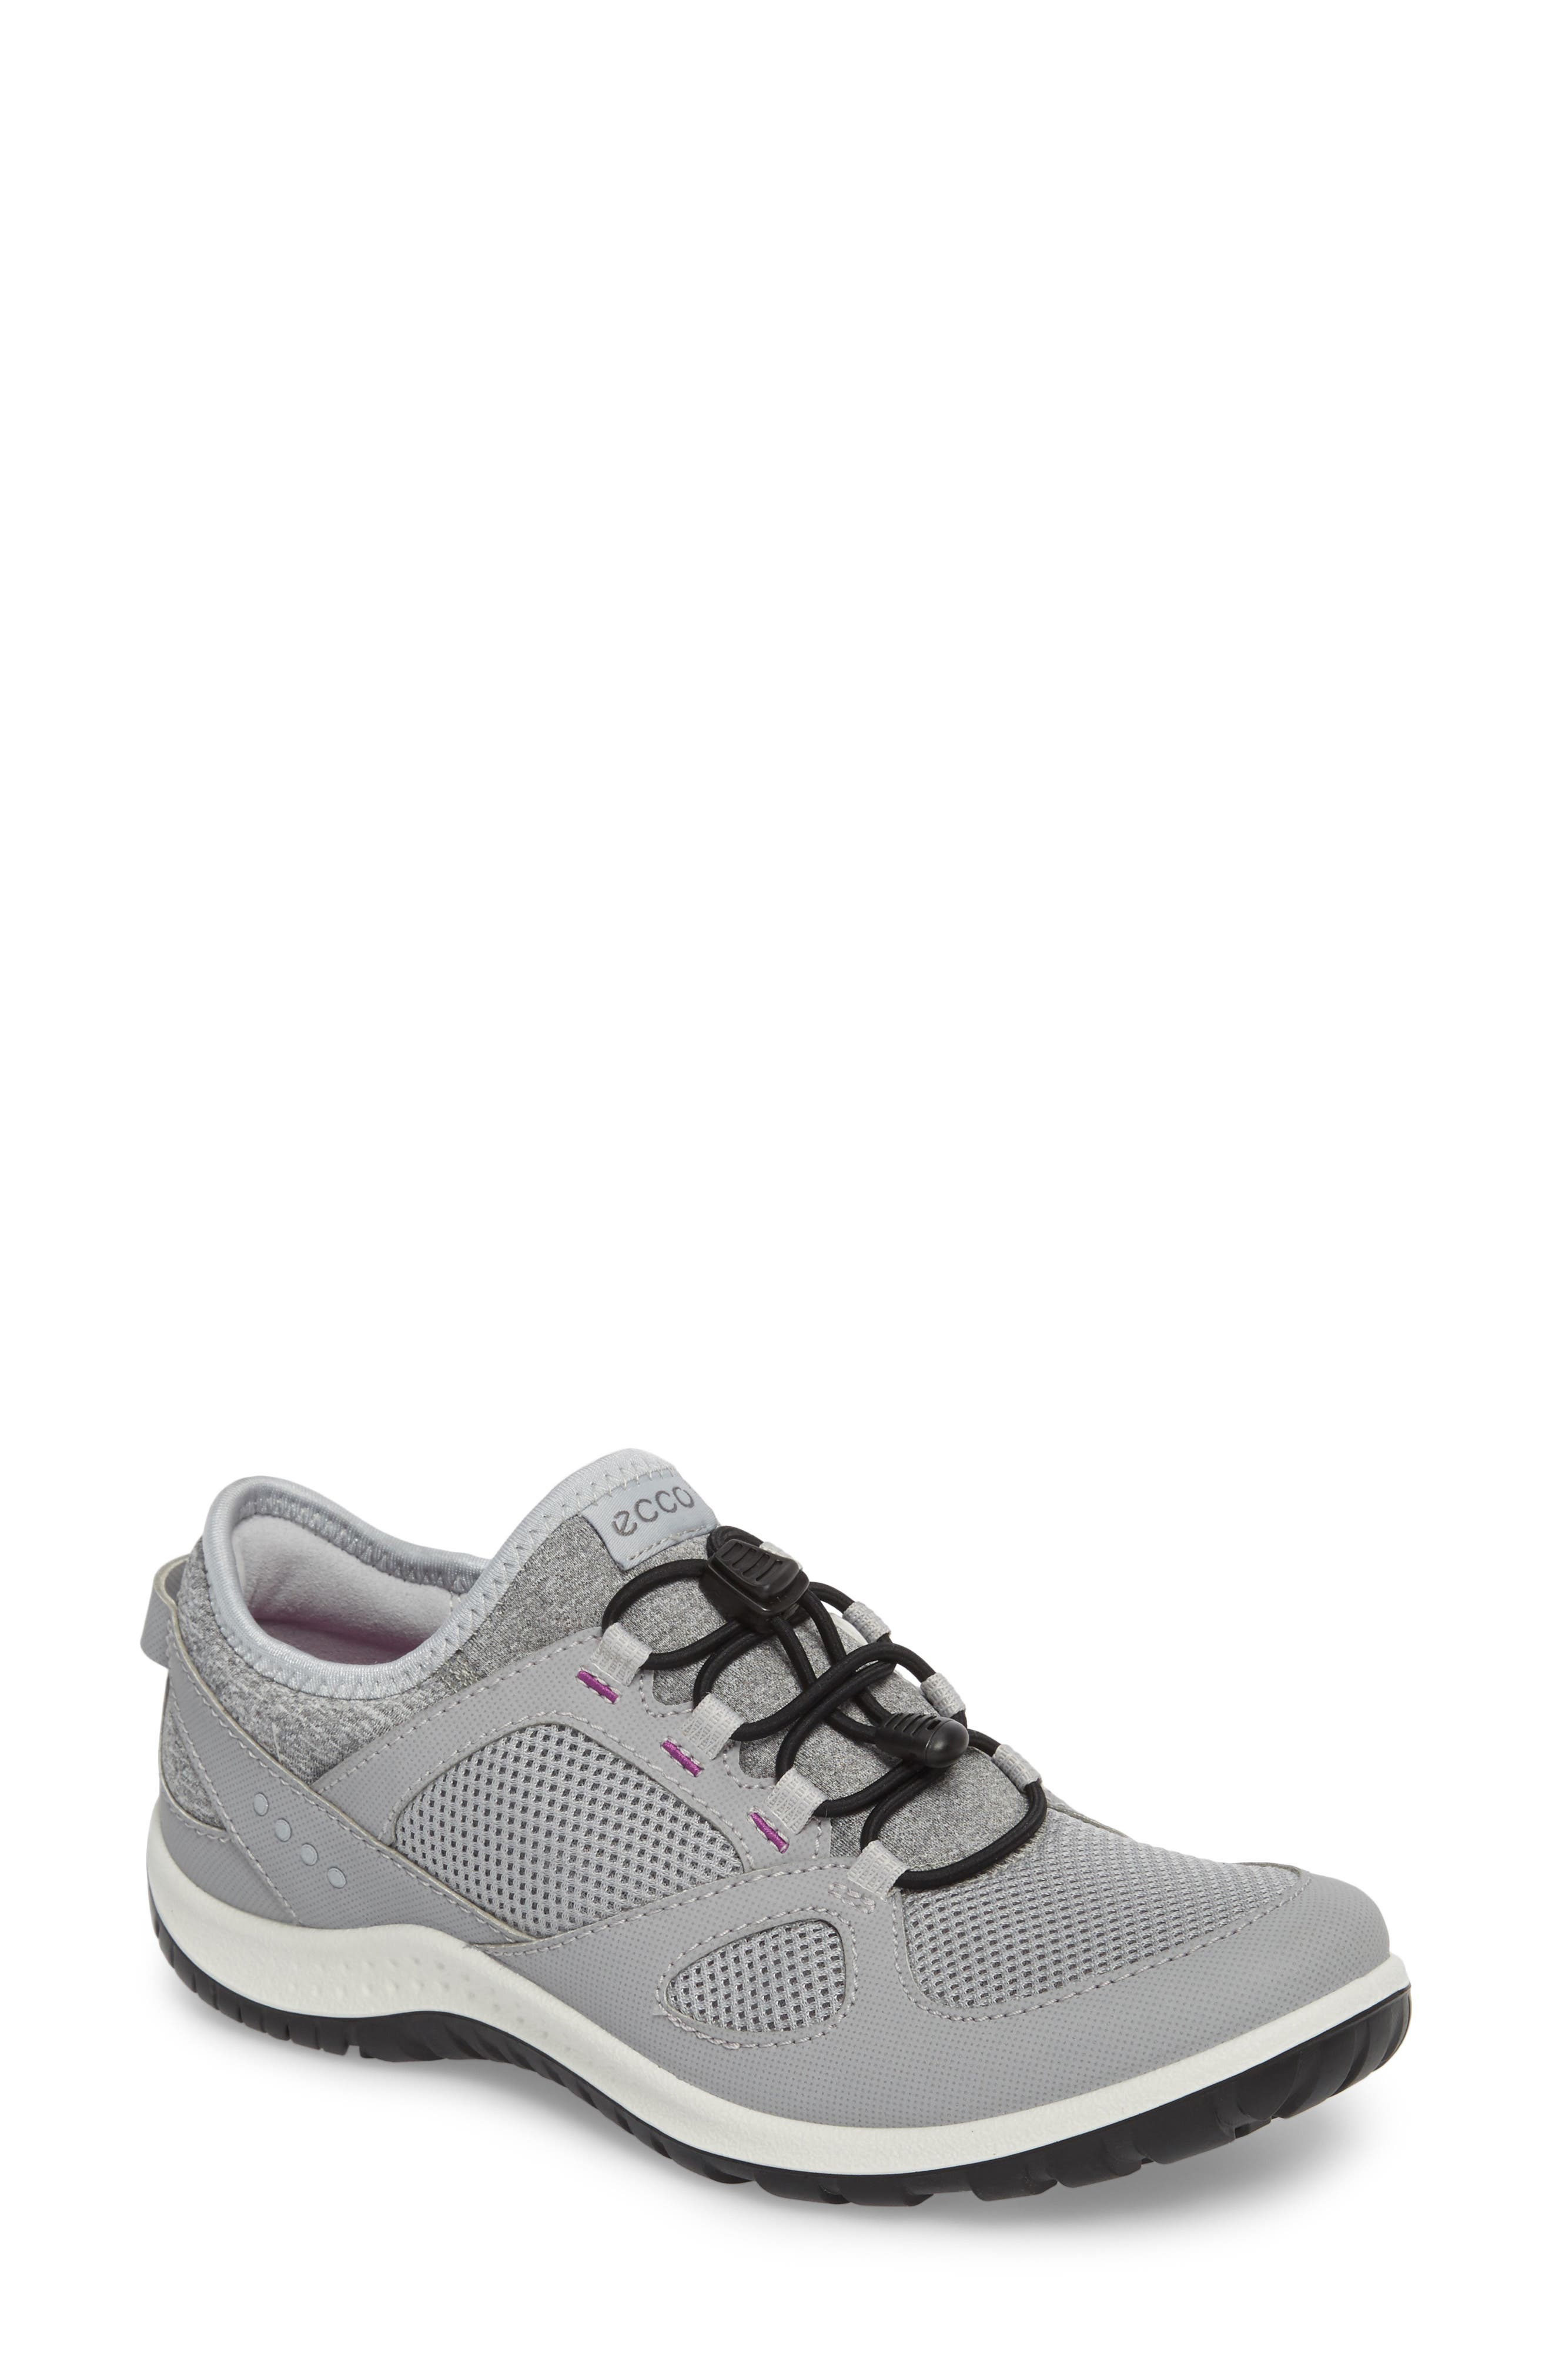 Aspina Toggle Hiking Sneaker,                         Main,                         color, Silver Grey Leather